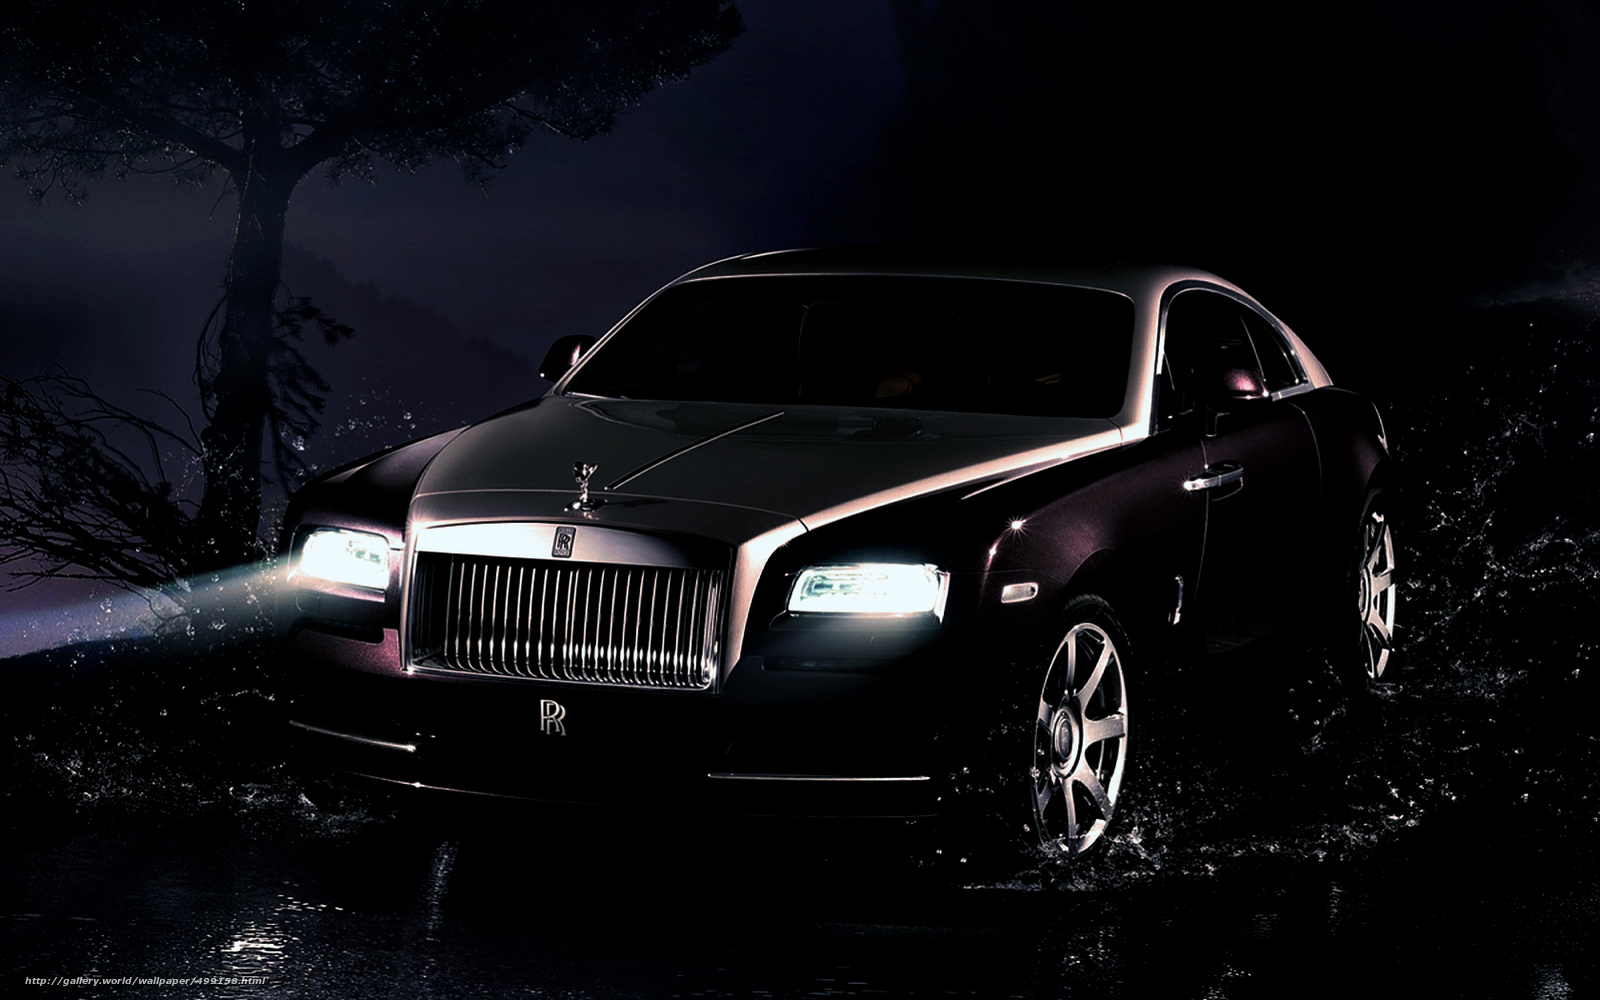 Download wallpaper rolls royce wraith night cars free desktop download wallpaper rolls royce wraith night cars free desktop wallpaper in the resolution 1680x1050 picture 499158 voltagebd Gallery